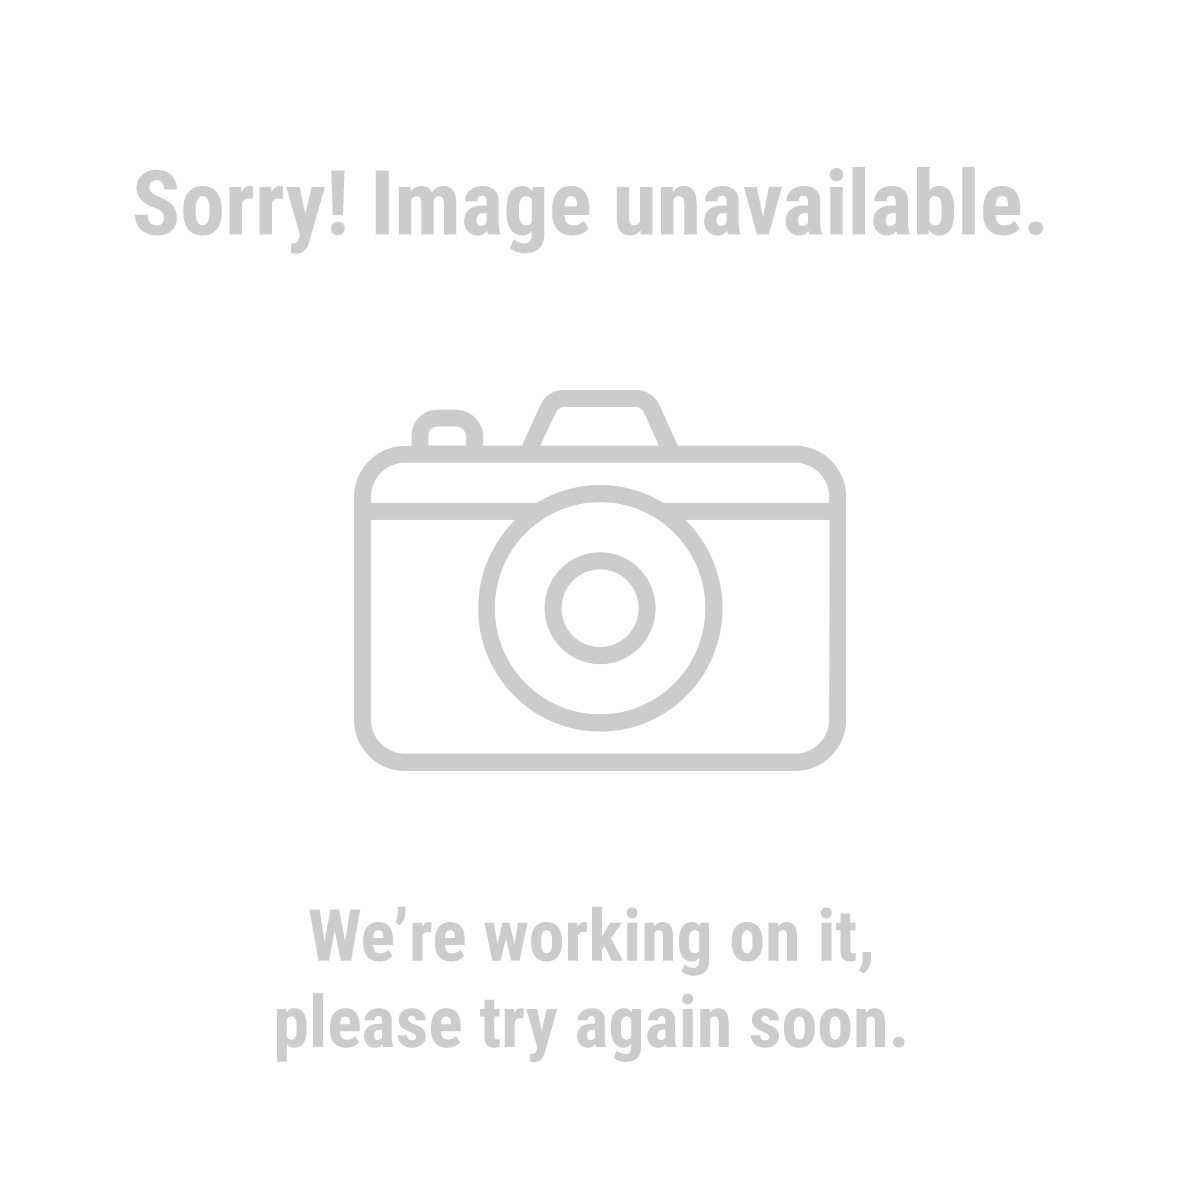 1 6 hp submersible utility pump 1600 gph for Drummond cleaning products